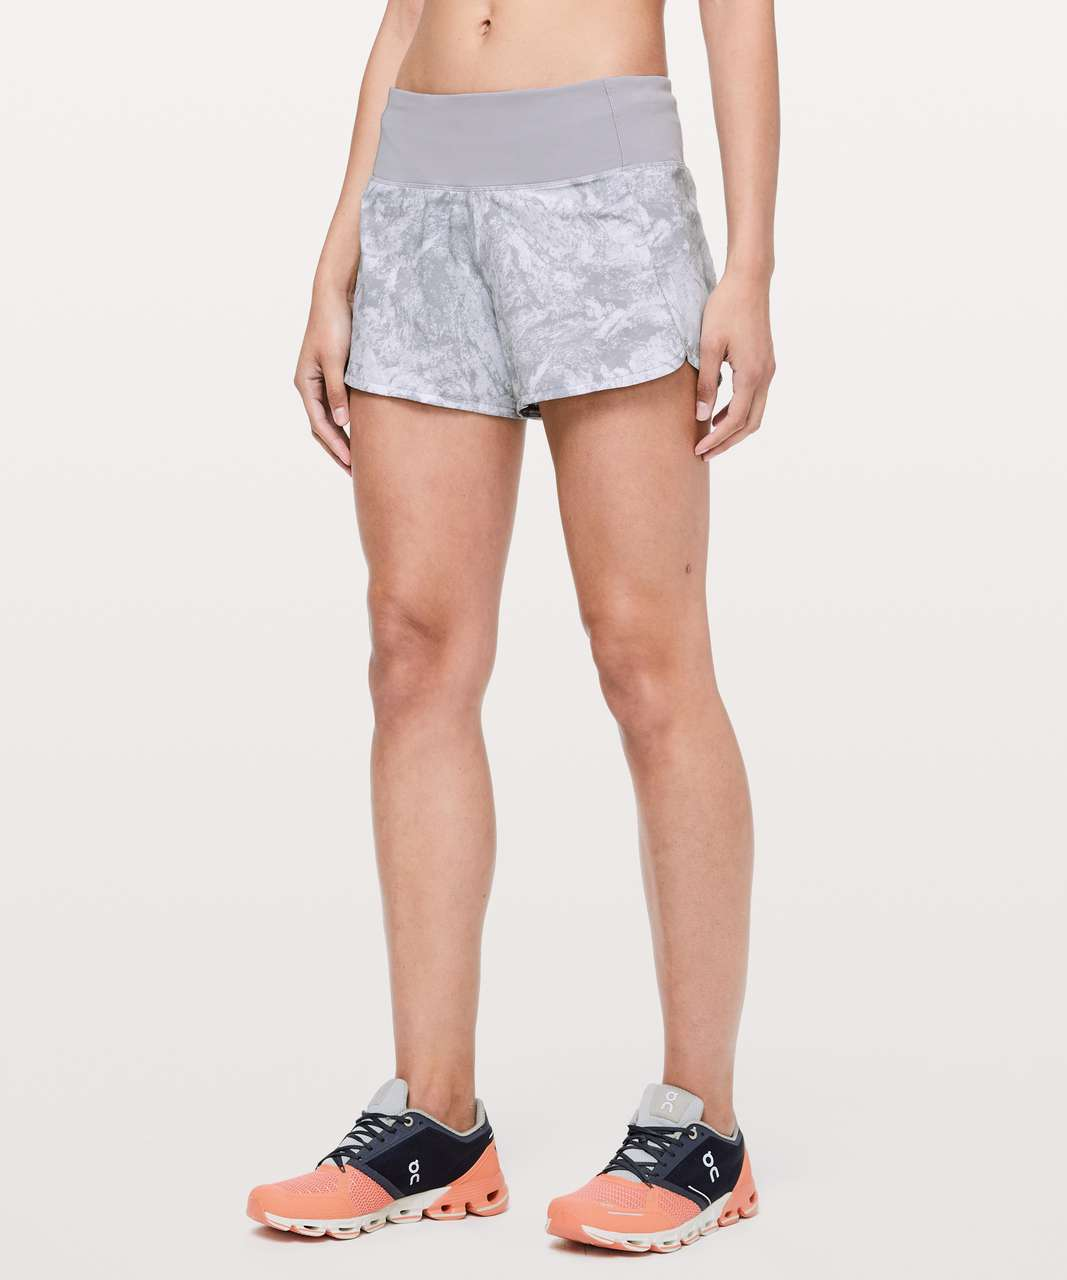 "Lululemon Run Times Short II *4"" - Washed Marble Alpine White Silverscreen / Silverscreen"